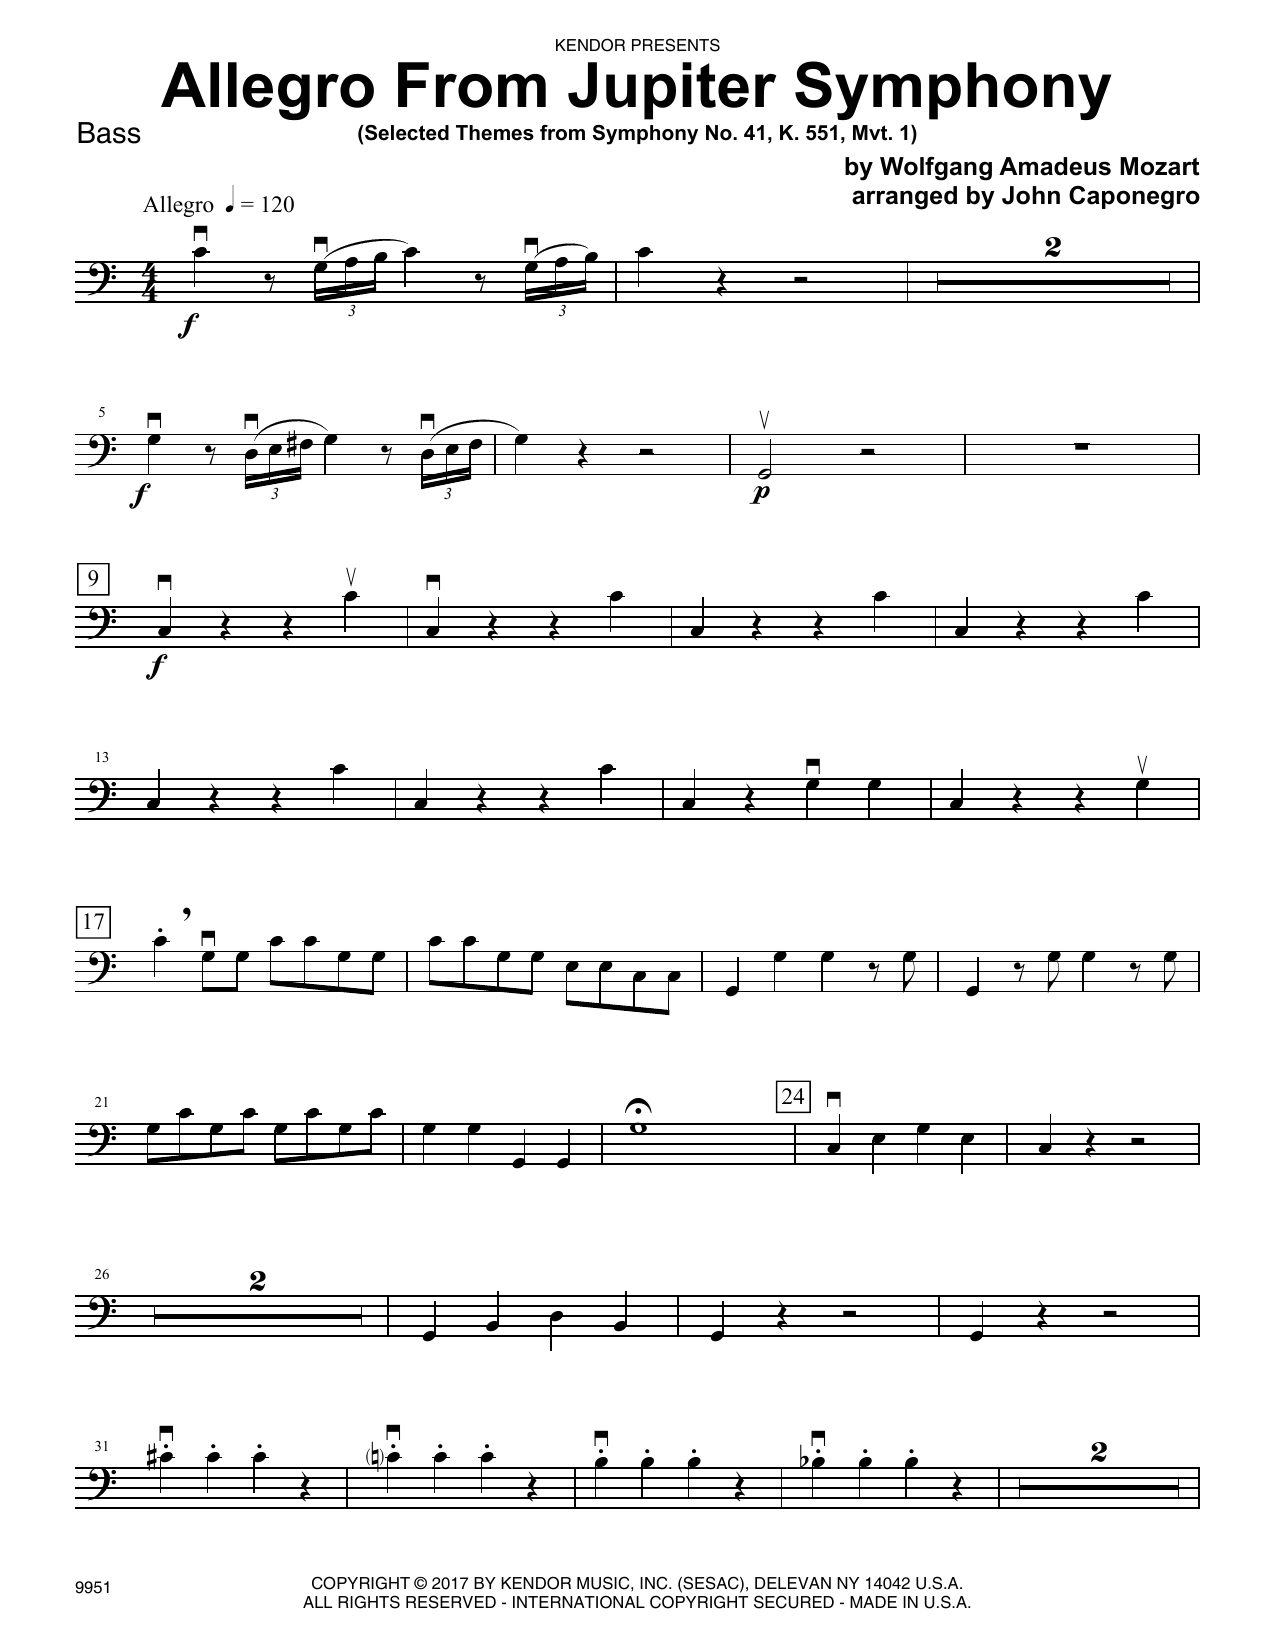 John Caponegro Allegro From Jupiter Symphony - Bass sheet music preview music notes and score for Orchestra including 3 page(s)